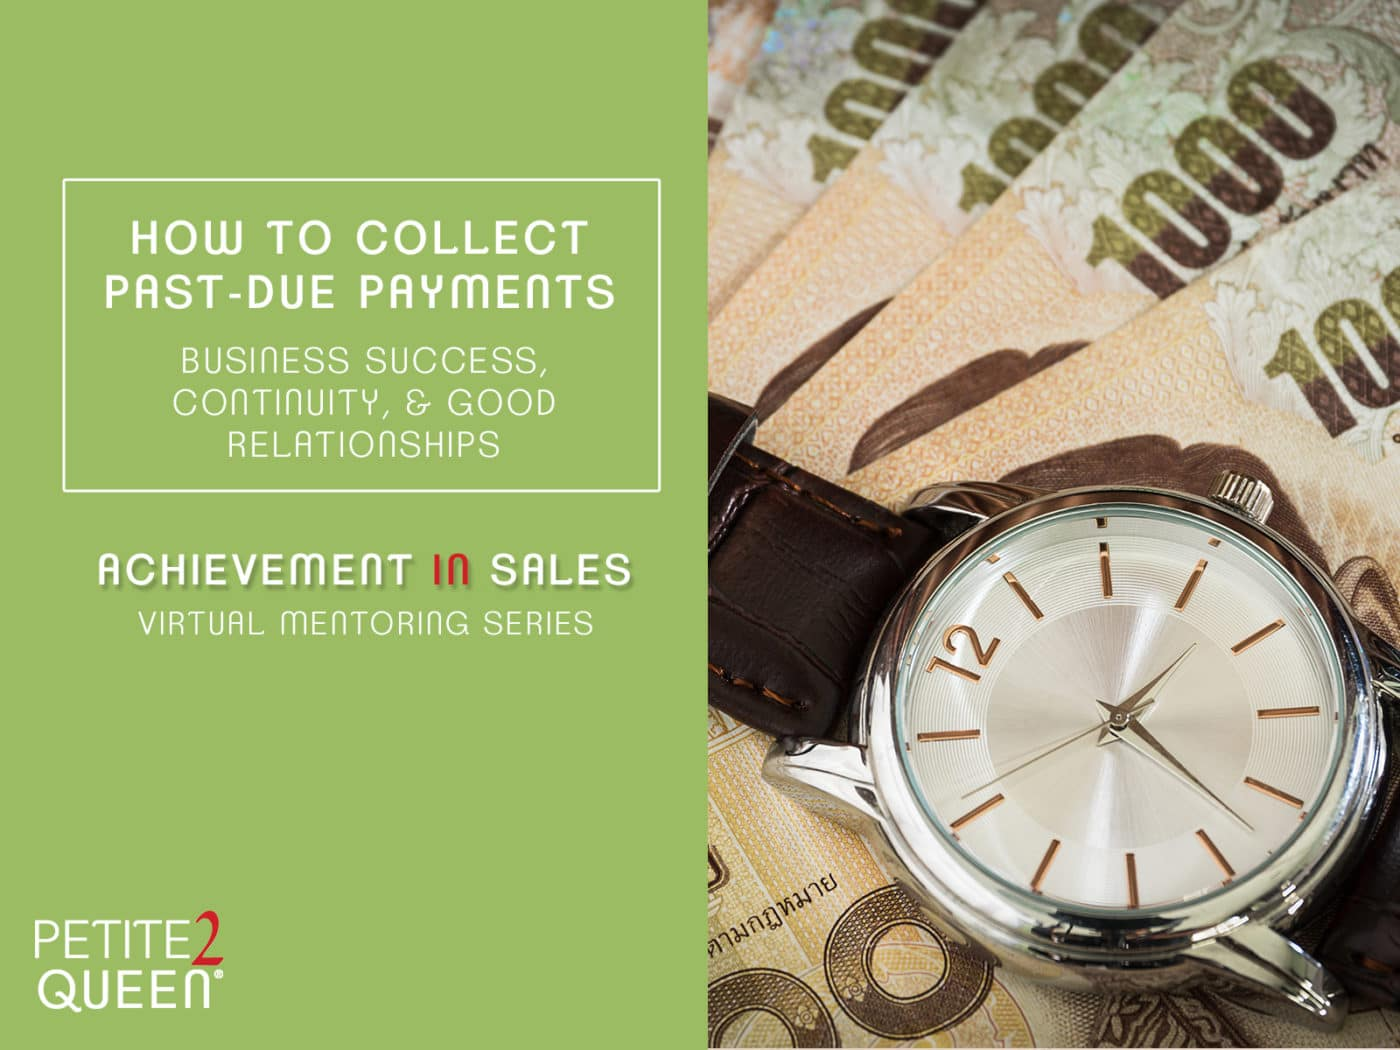 How to Collect Past-Due Payments